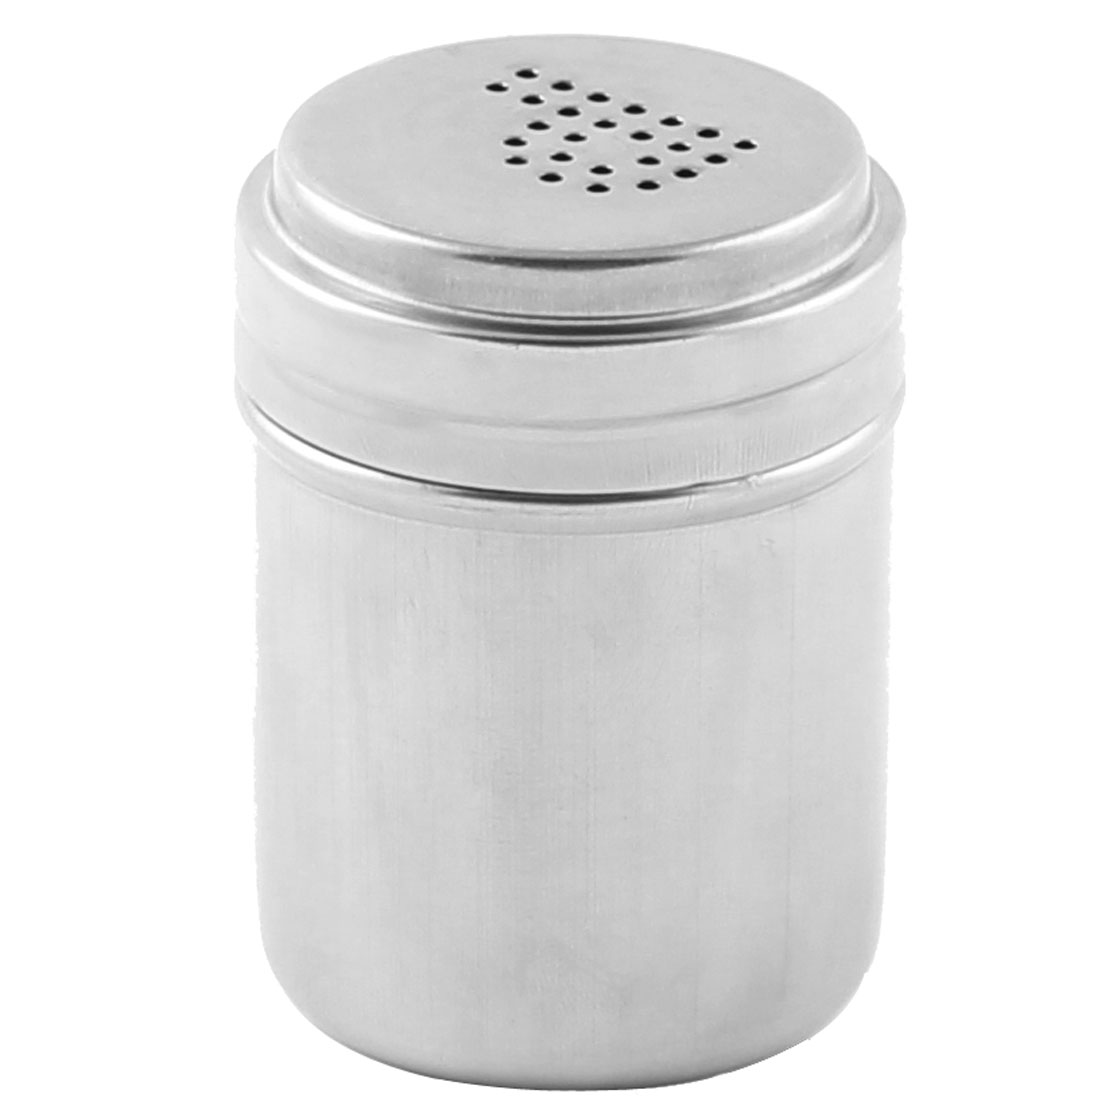 Home Kitchen Stainless Steel Irrotional Lid Cruet Bottle Chili Powder Holder Silver Tone